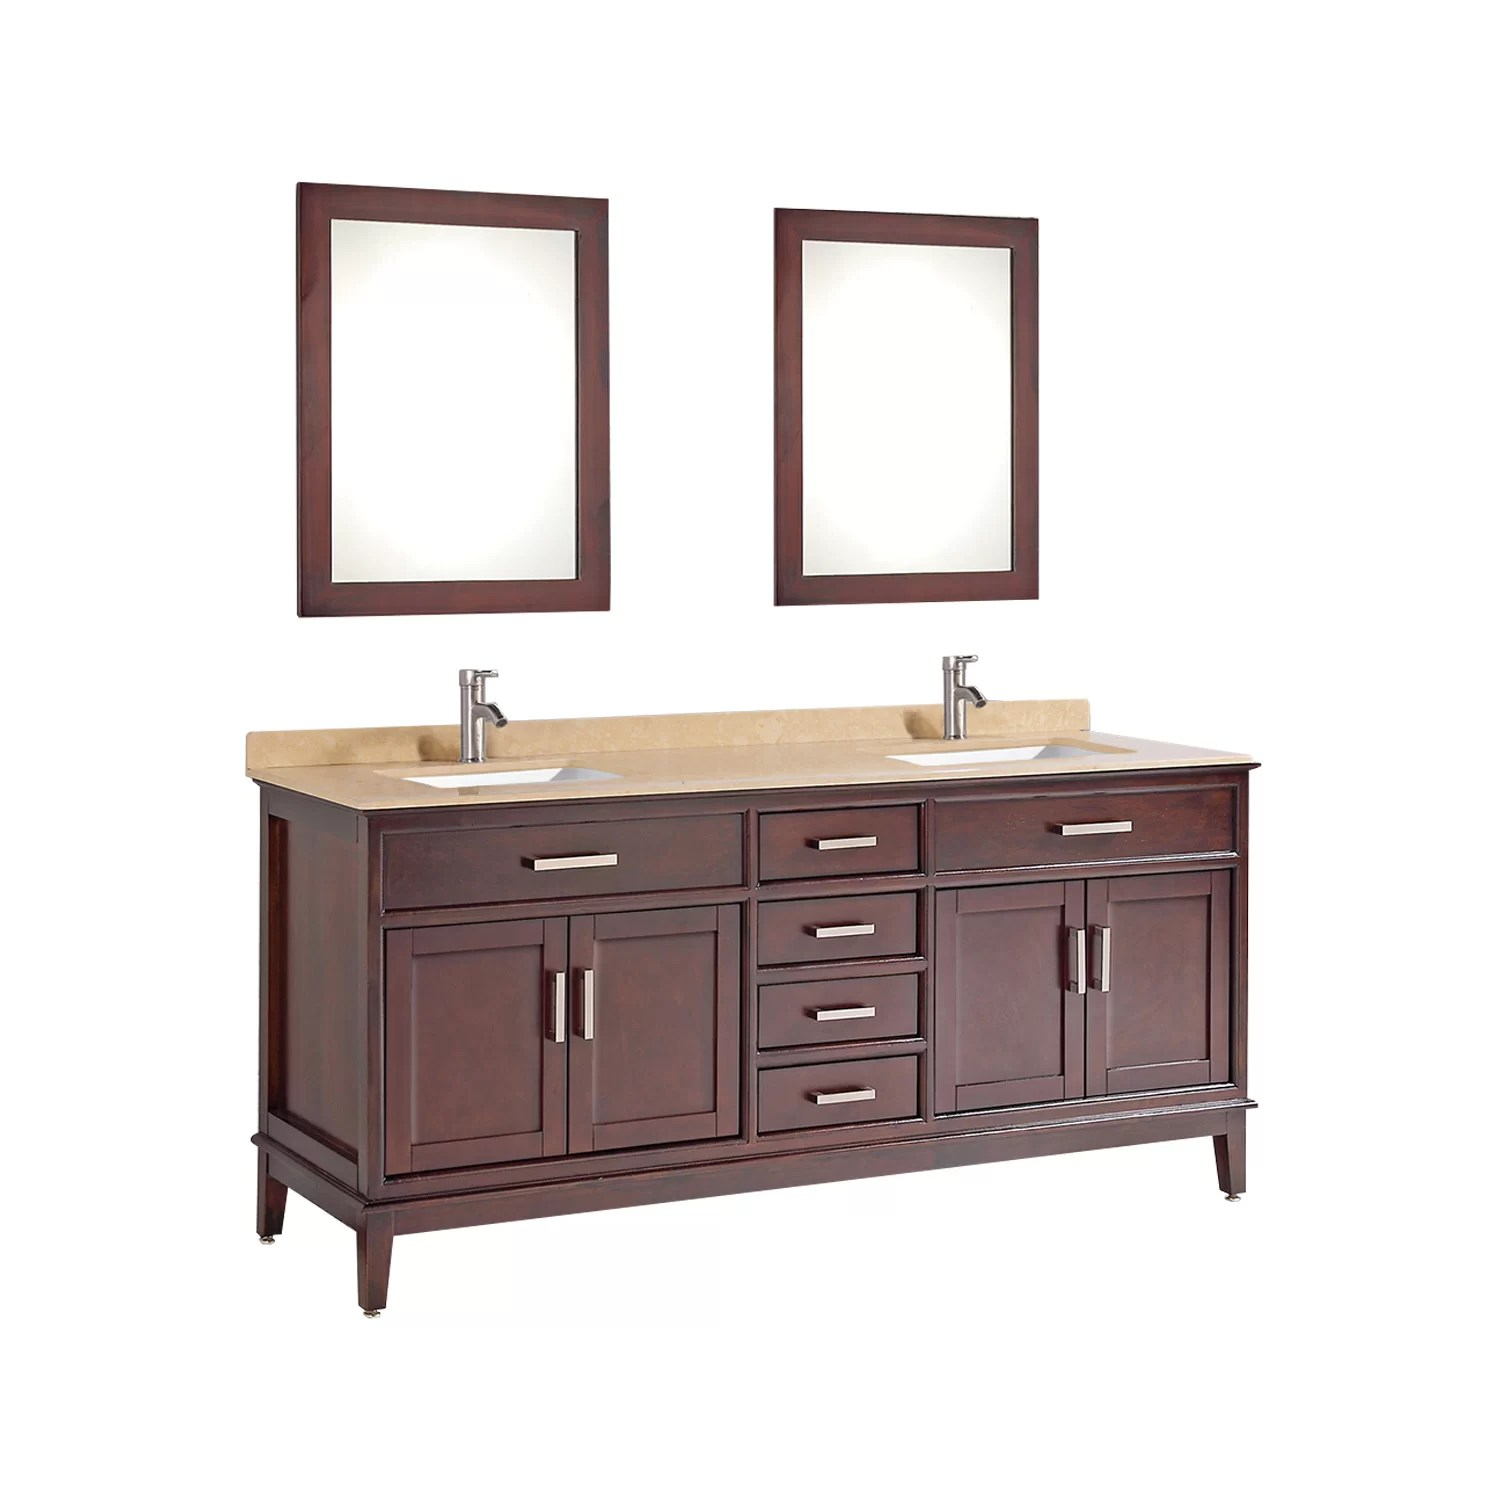 MTDVanities Sierra 598 Double Bathroom Vanity Set with